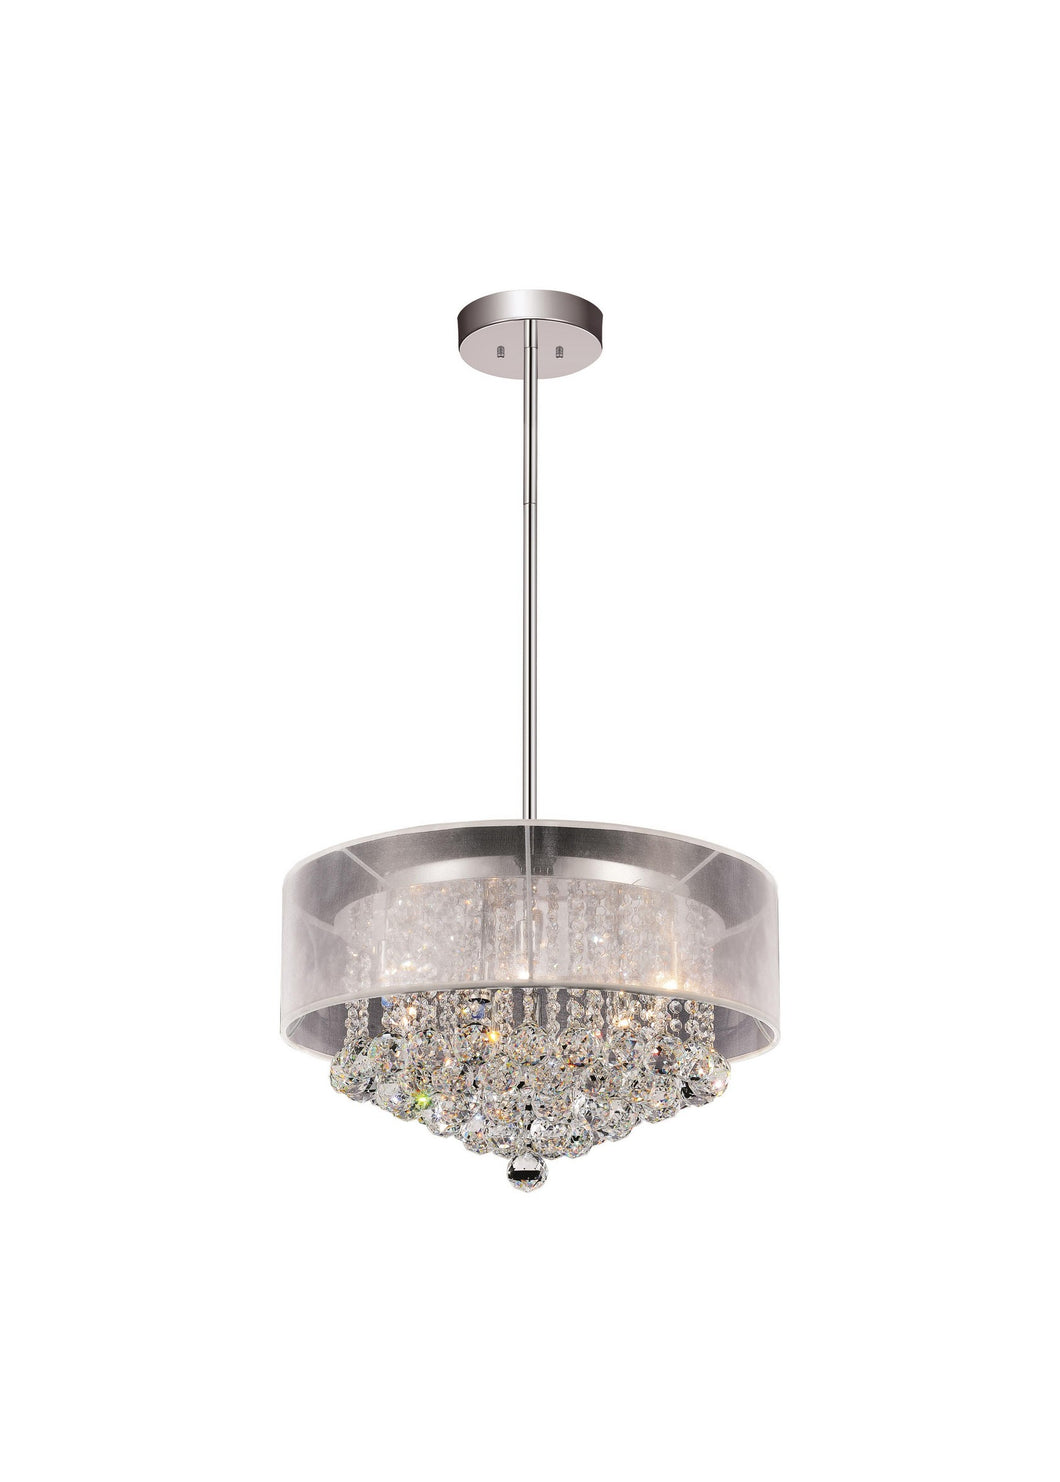 9 LIGHT DRUM SHADE CHANDELIER WITH CHROME FINISH - Dreamart Gallery